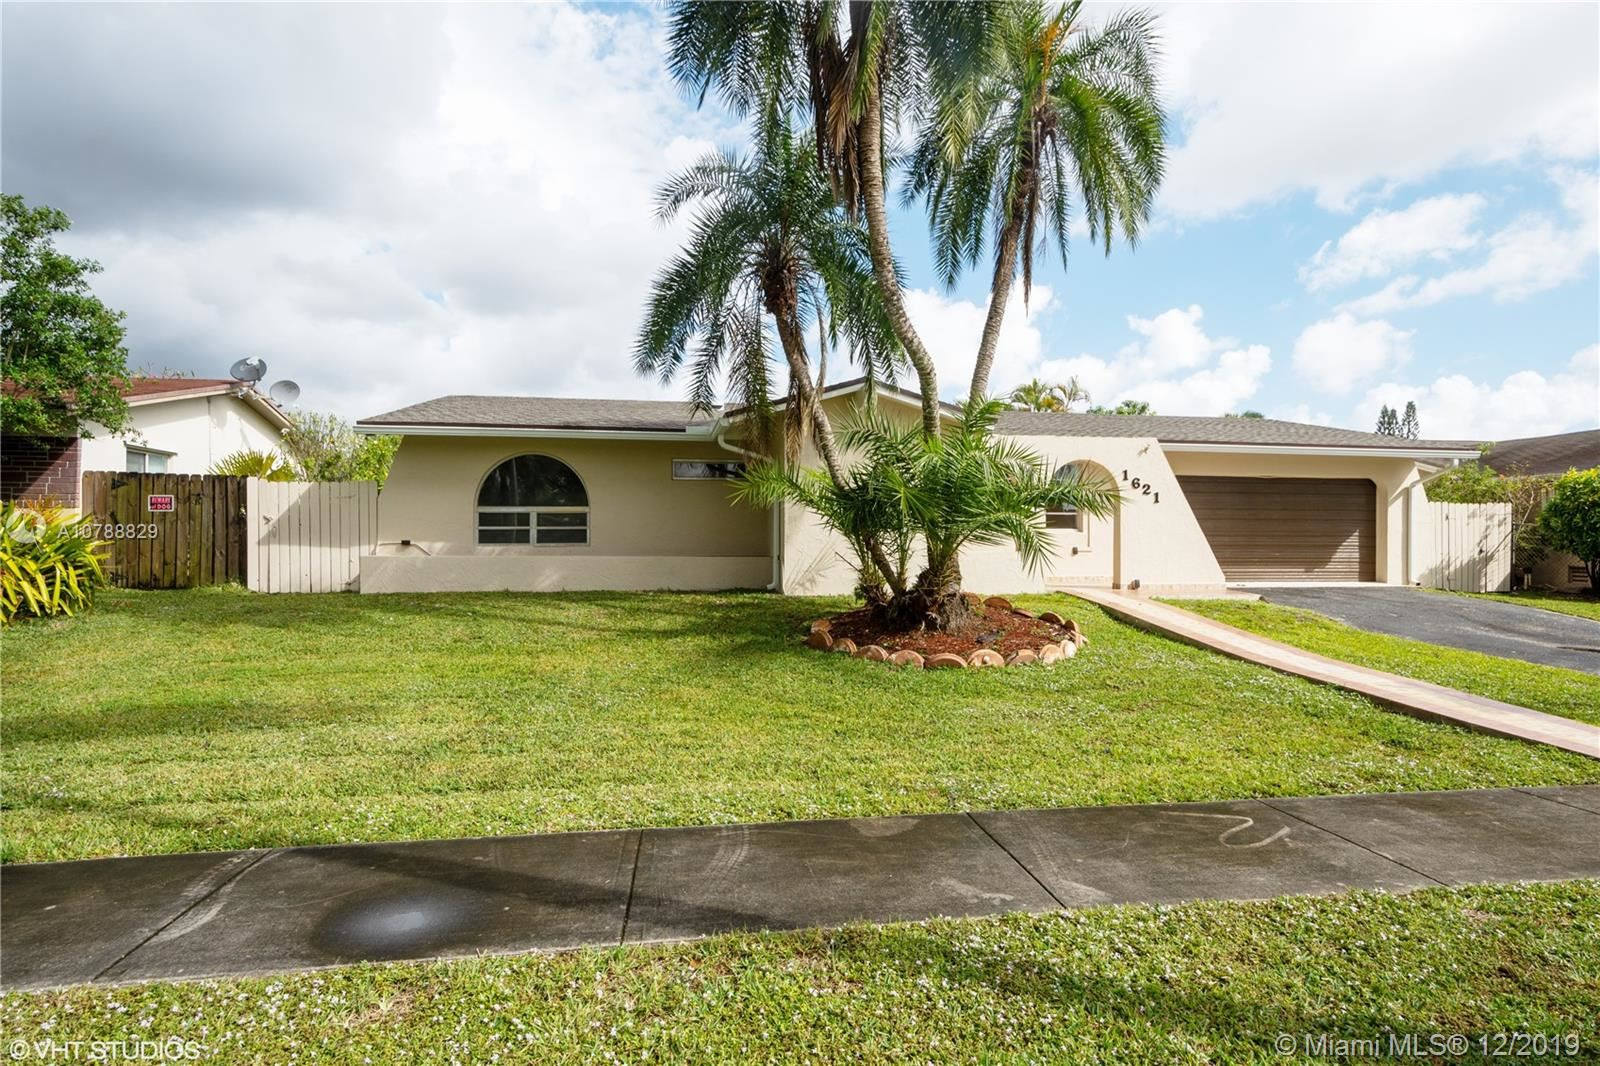 1621 NW 122nd Ave, Pembroke Pines, FL 33026 - #: A10788829